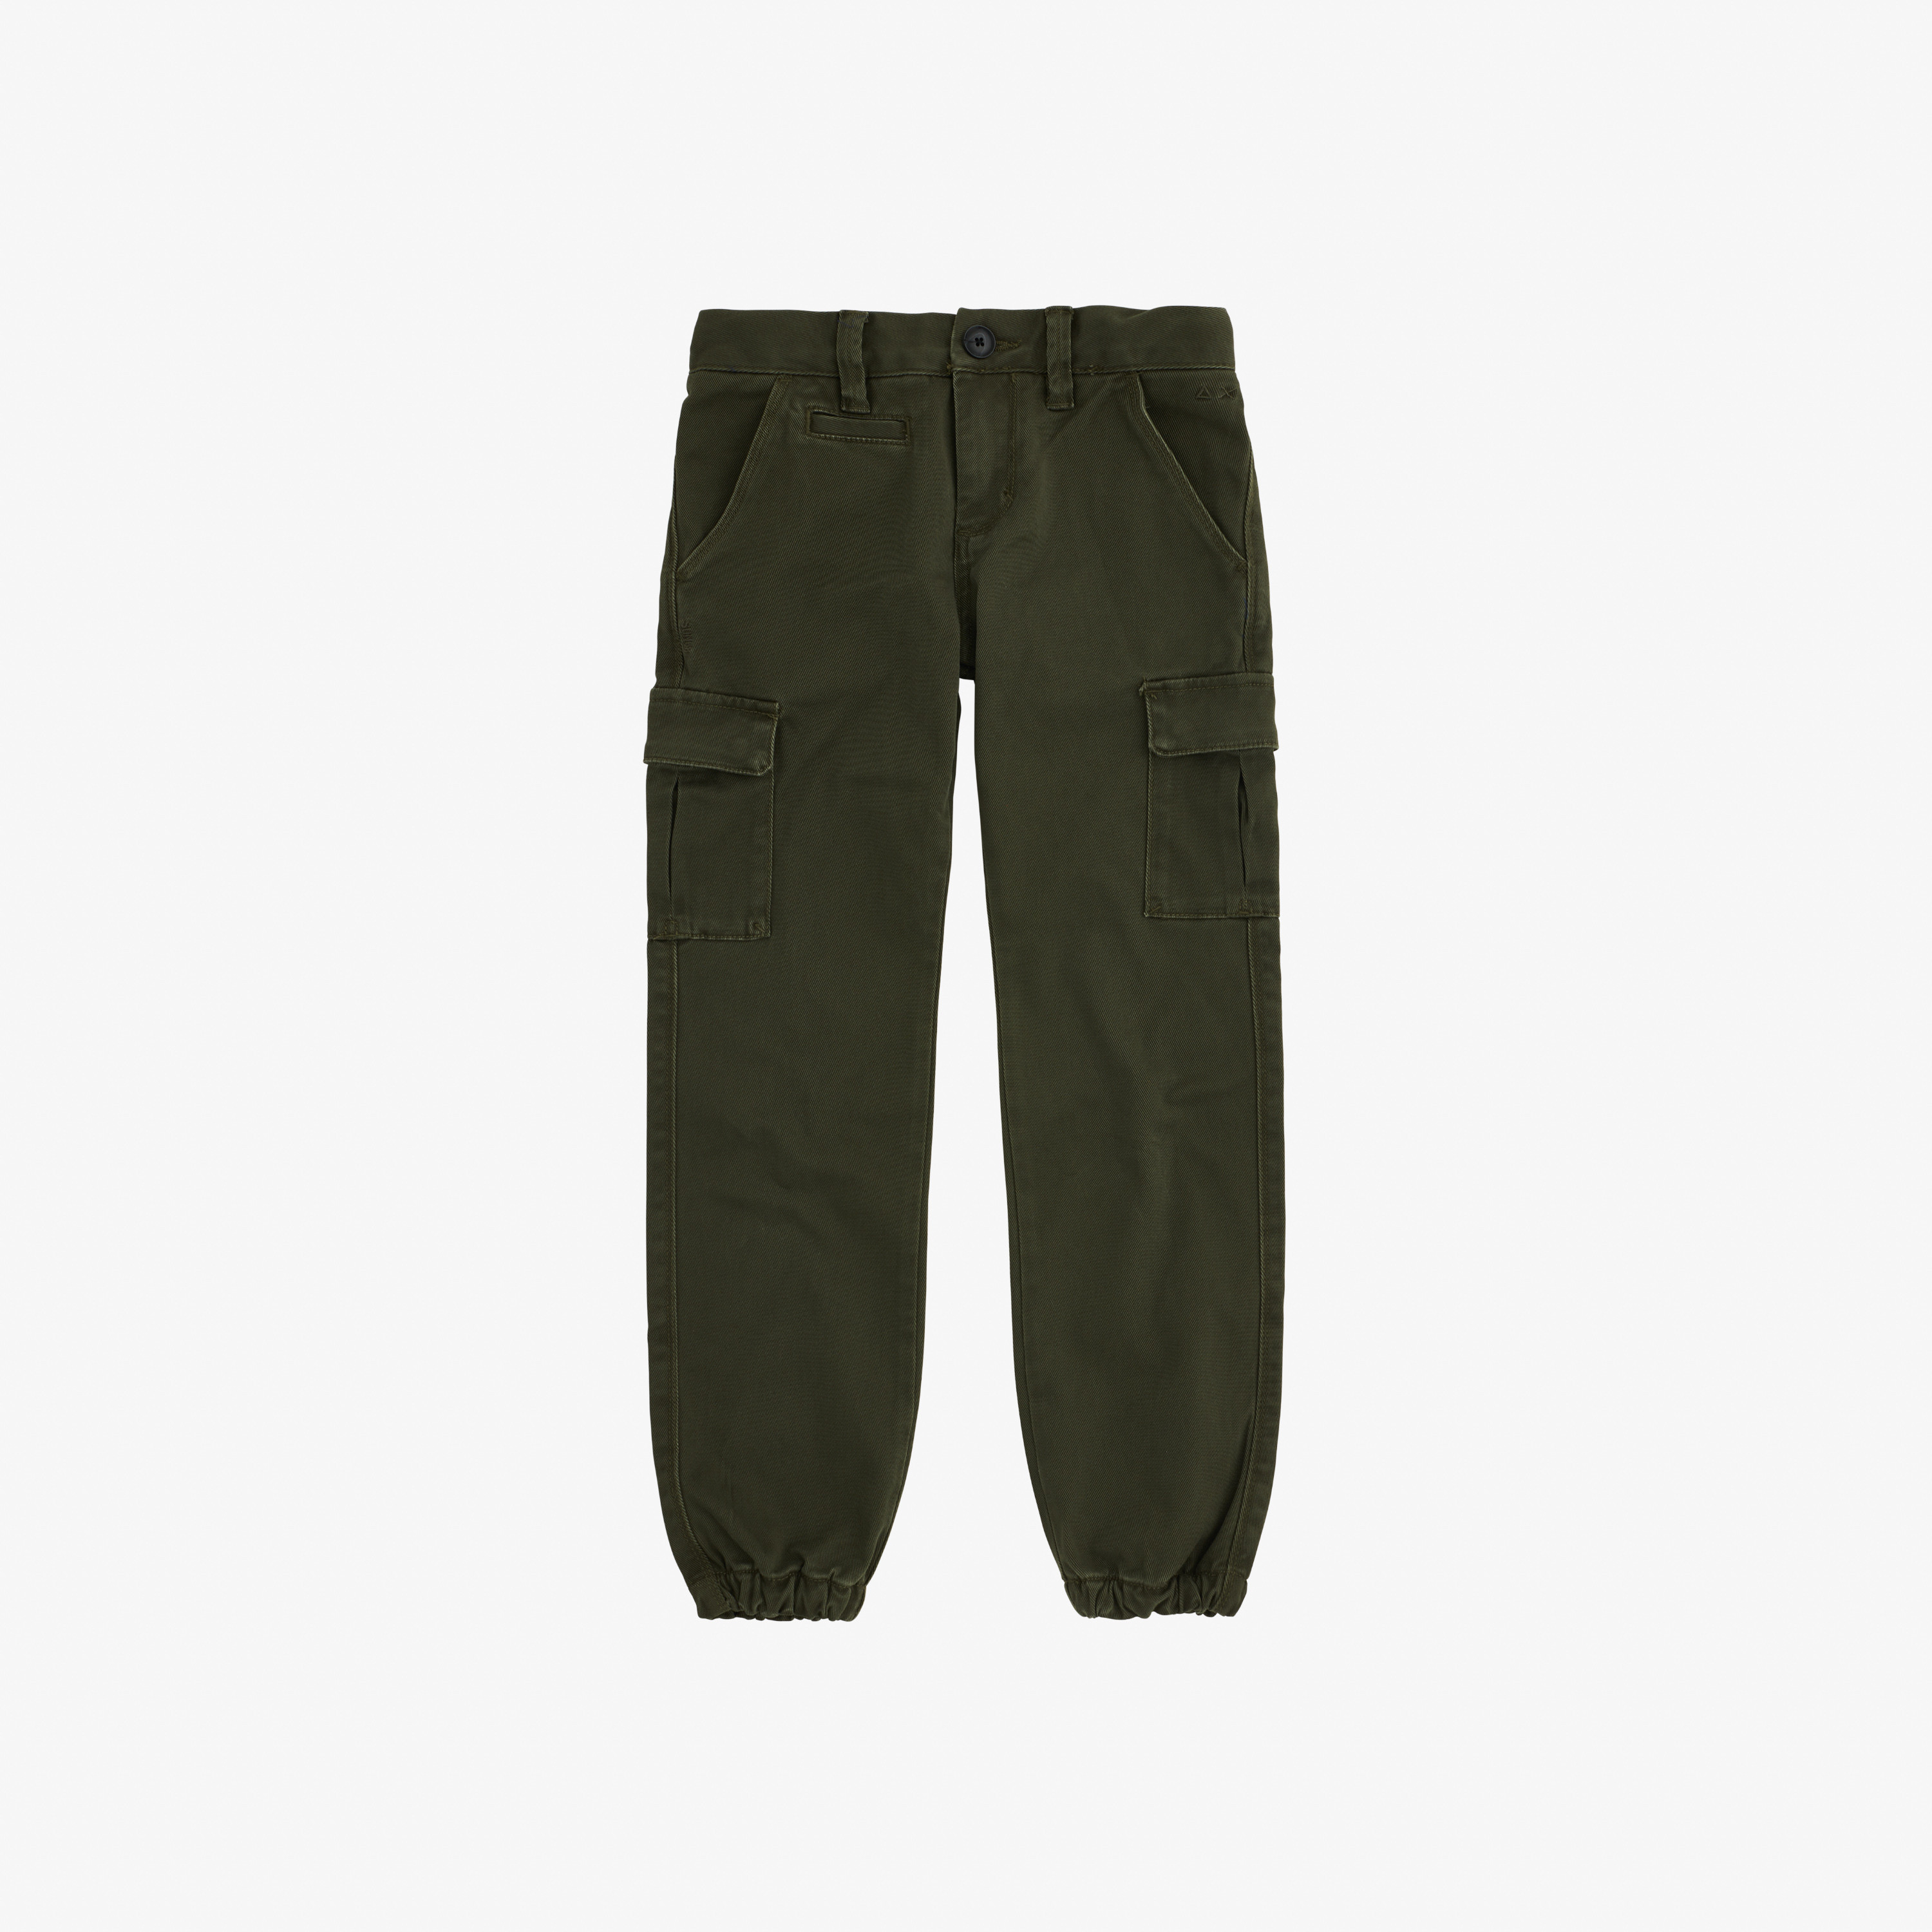 BOY'S PANT MILITARY MILITARE SCURO